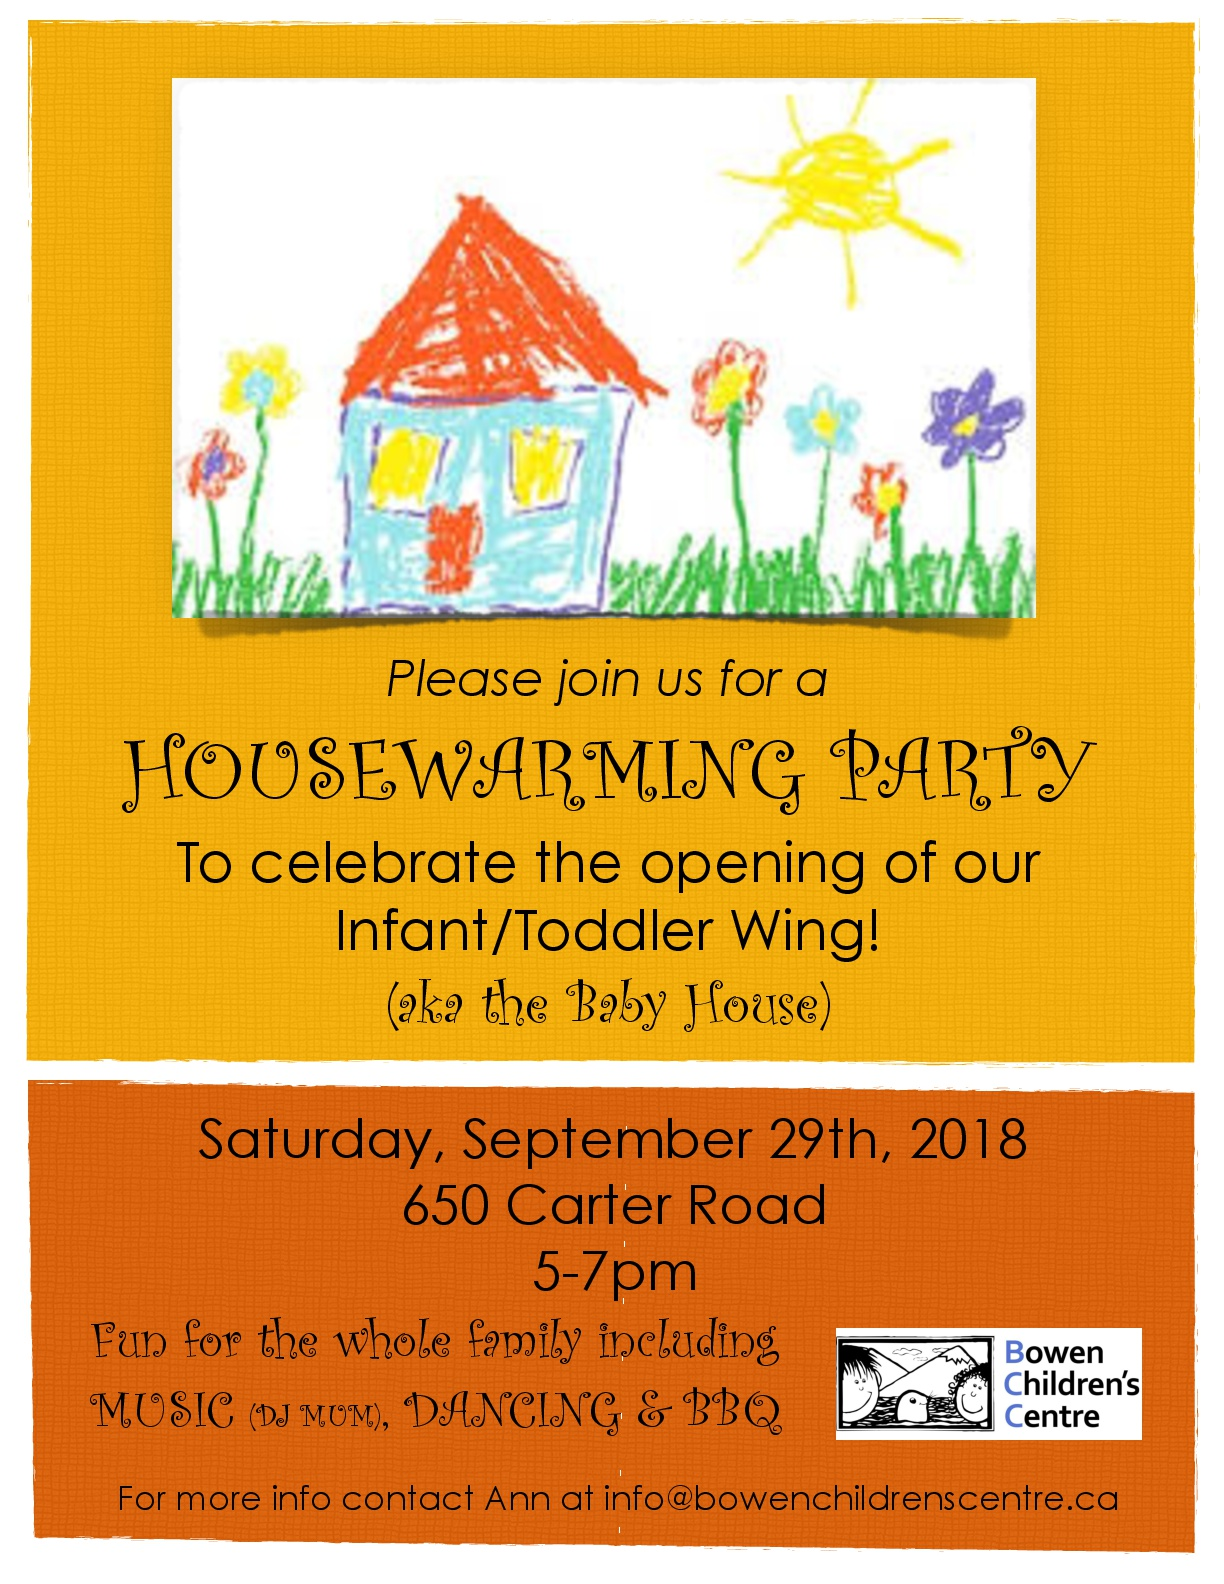 Housewarming Party on Sept 29